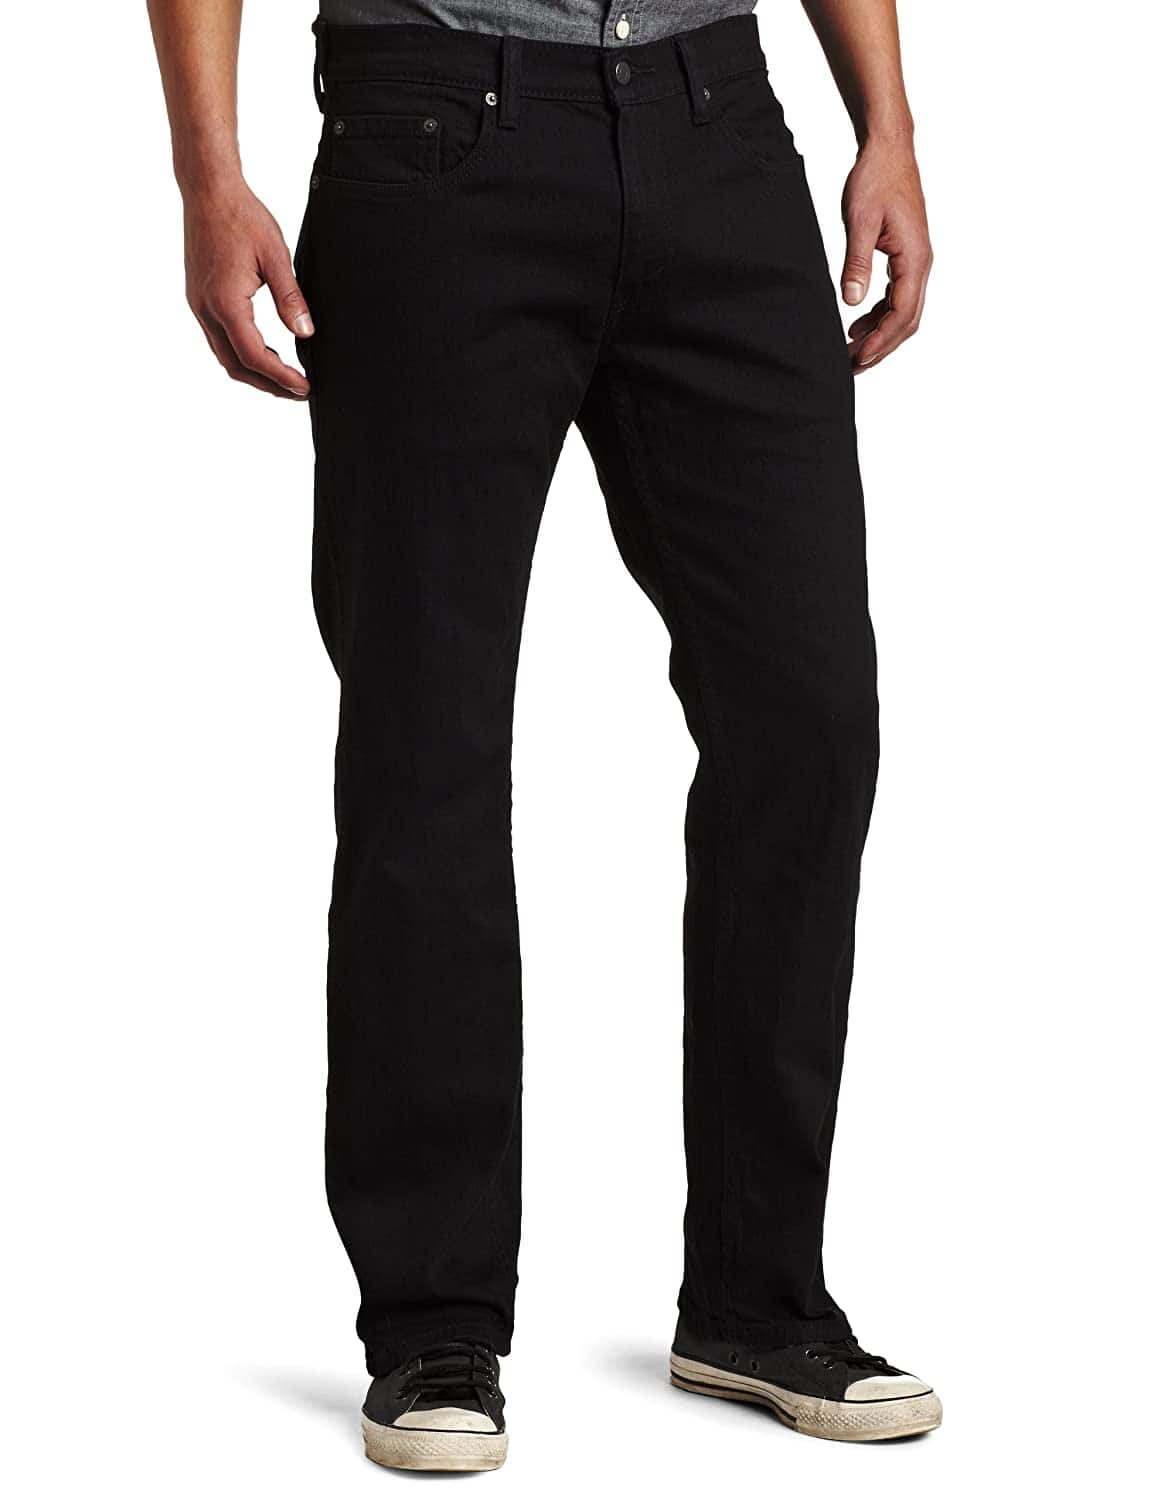 Levi's Men's 559 Relaxed Straight Jean Color: Black $9.00 @Amazon (limited sizes)